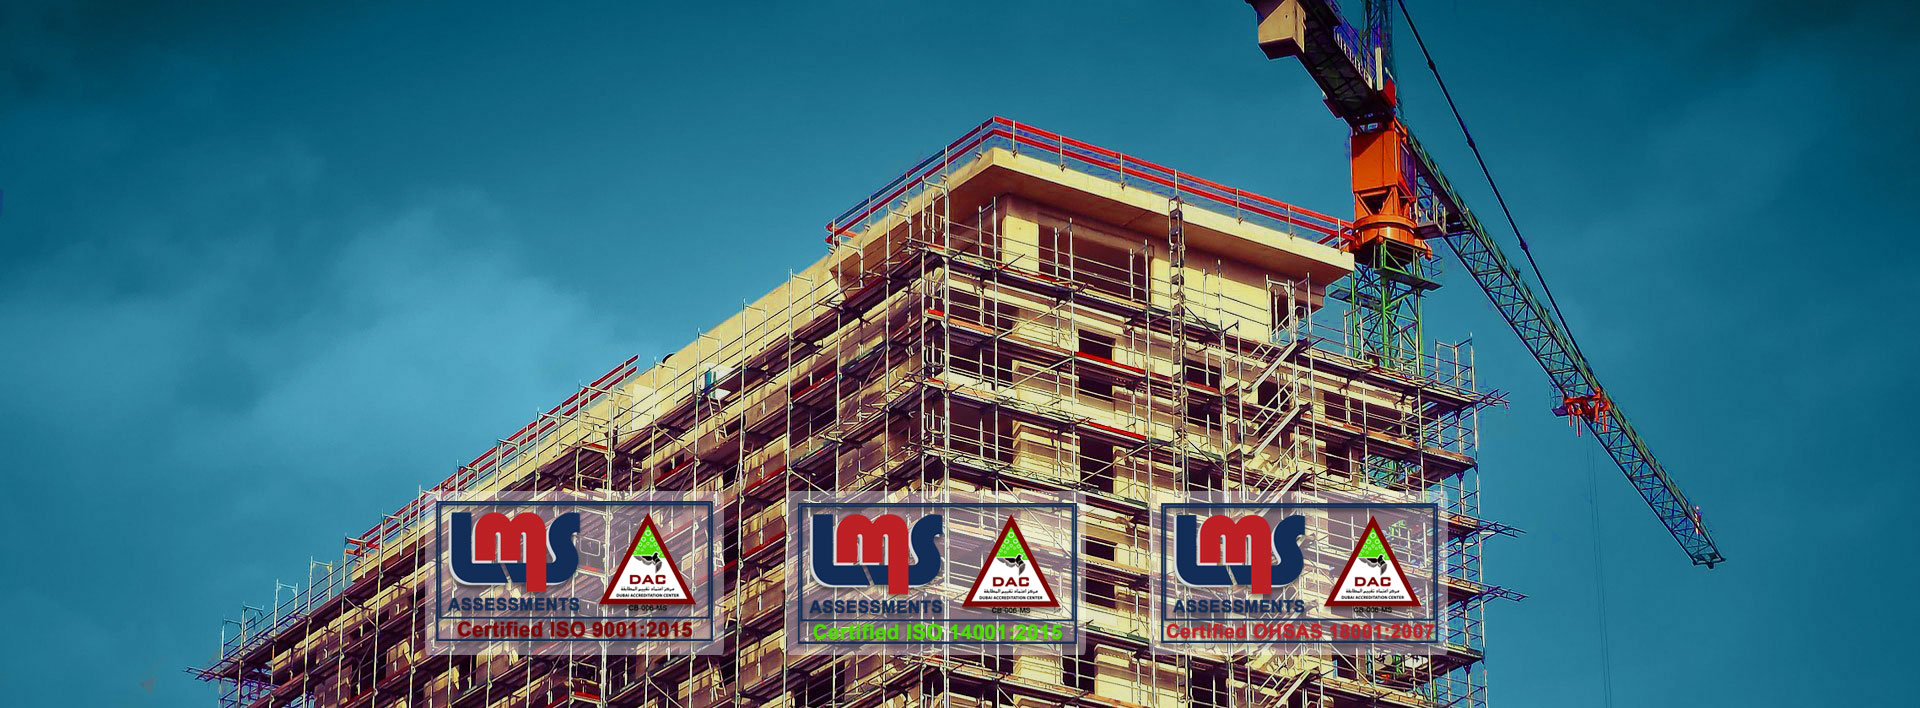 Well Certified Scaffolding Rental and Contracting Company in